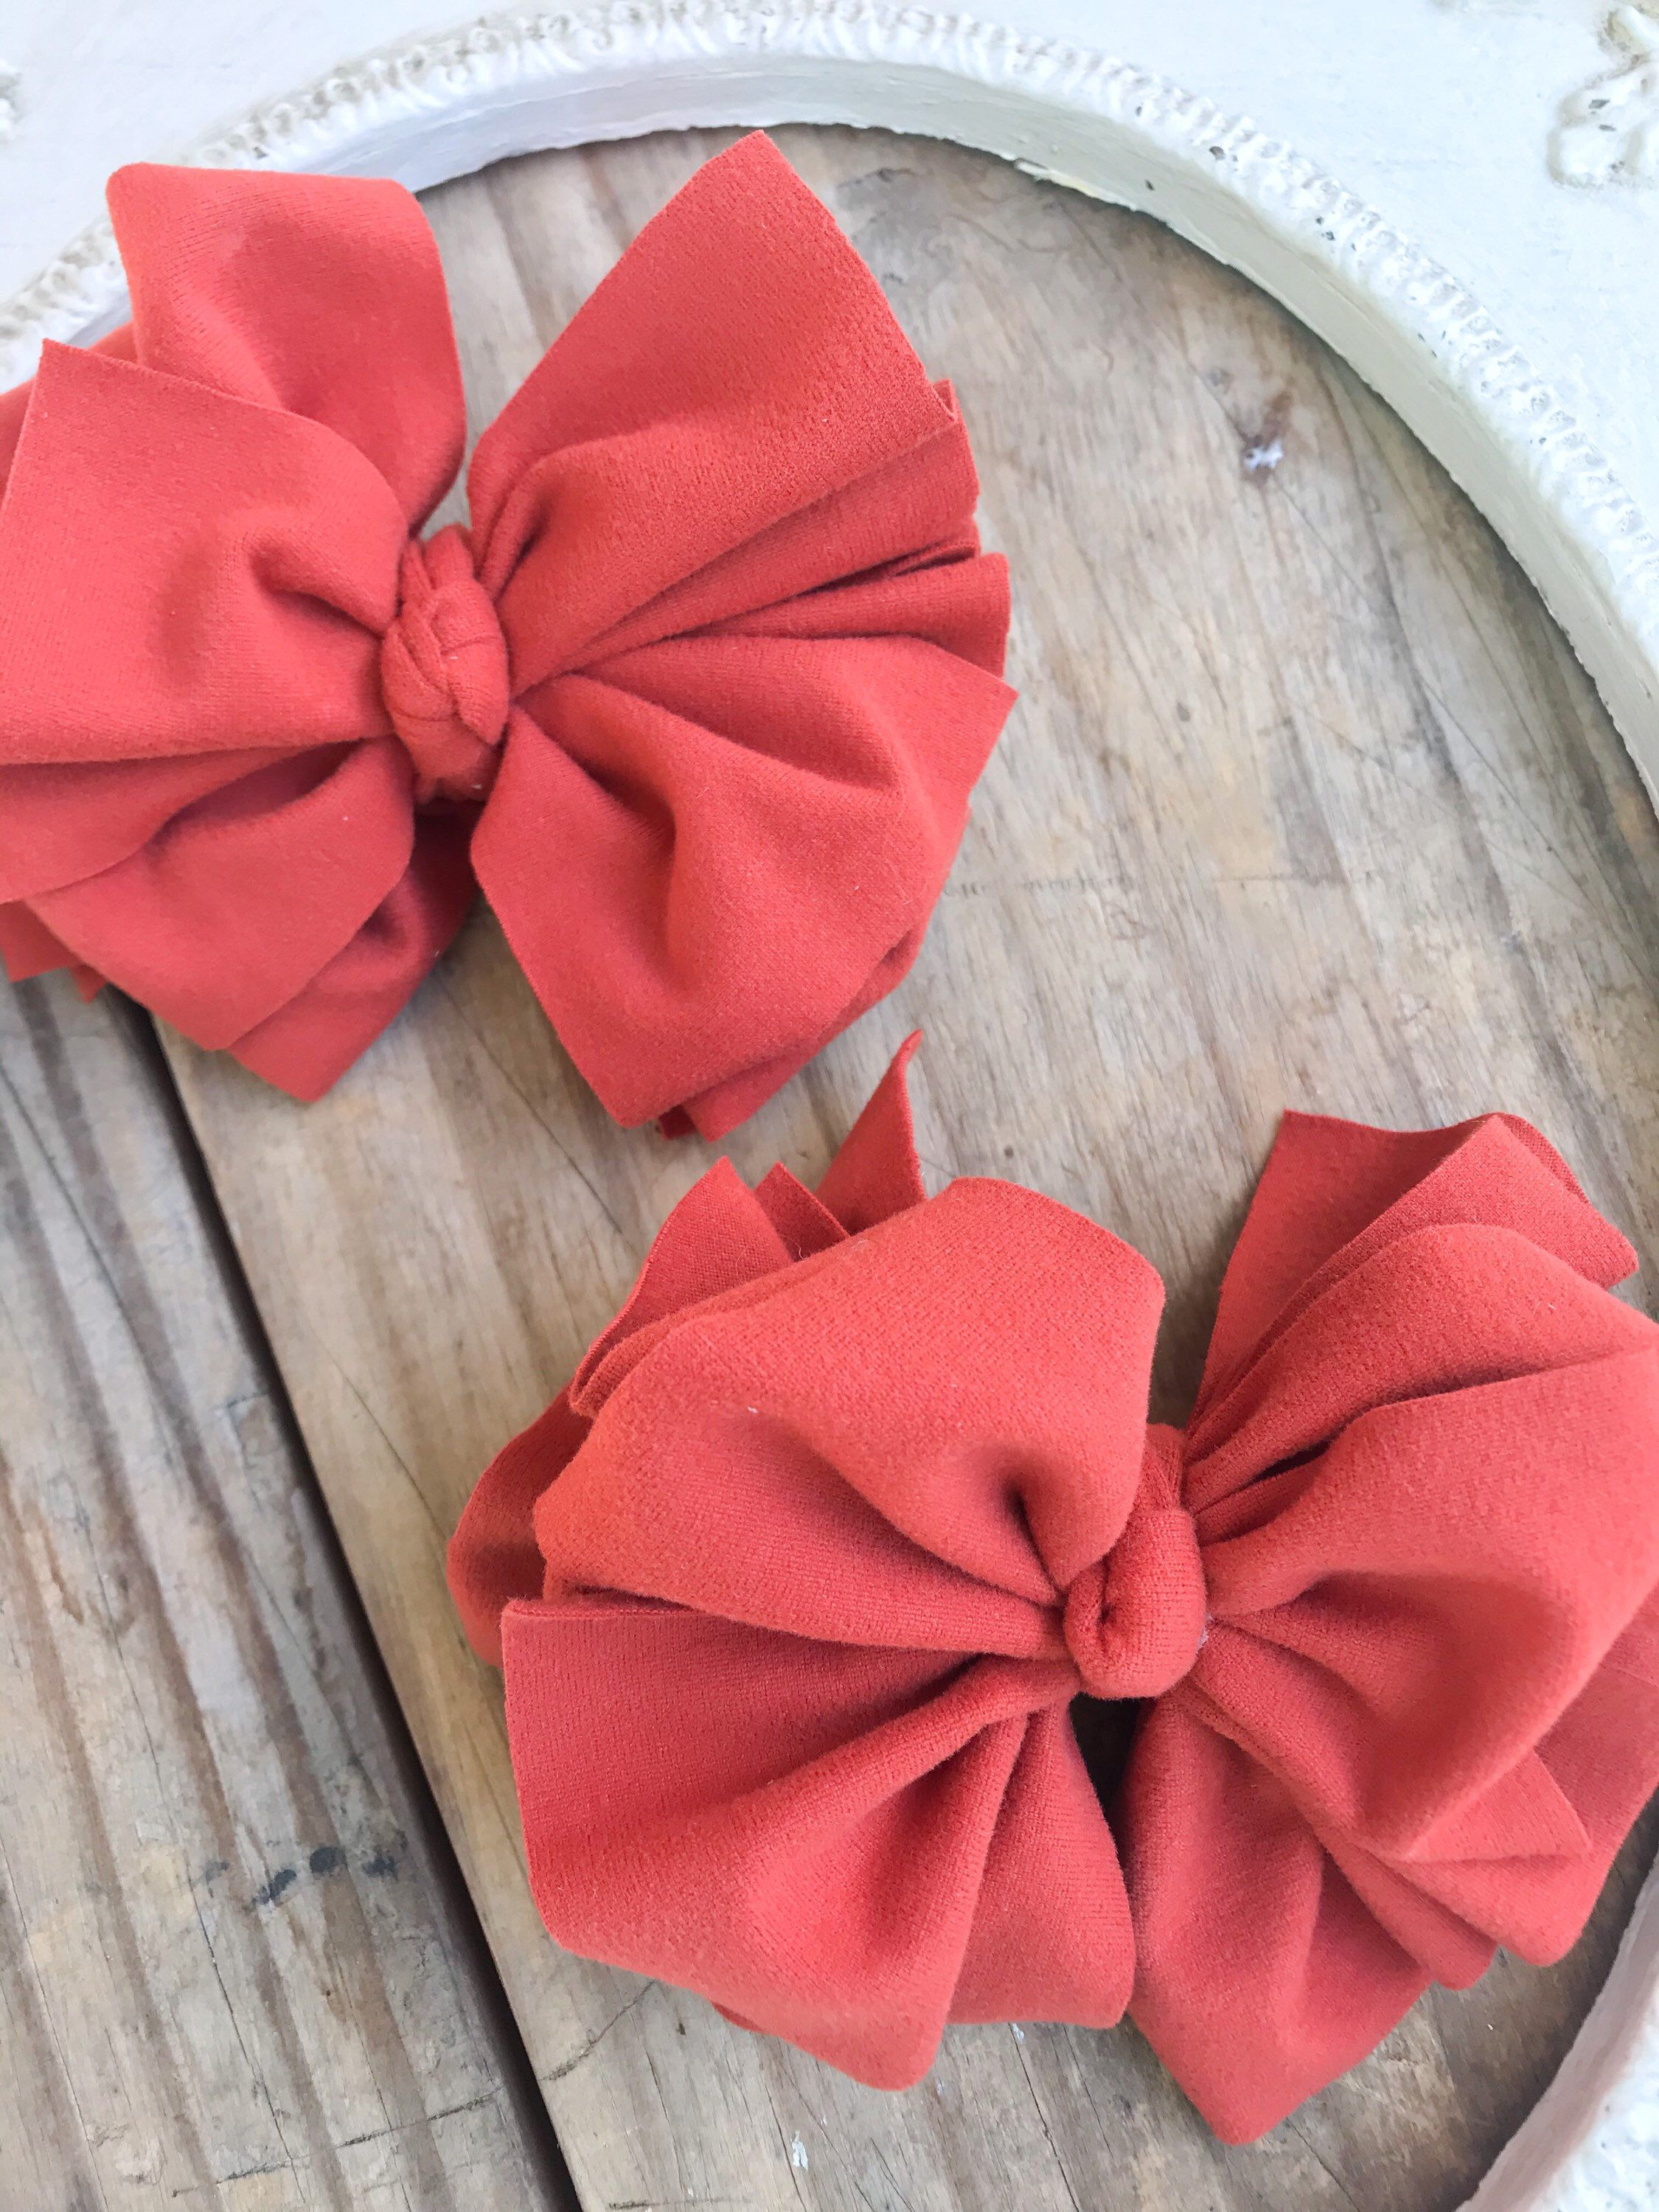 Pigtail Bows Mommy and Me Hair Bows for Baby Fabric Hair Bows Baby Headwrap Hair Bows on Clips Large Hair Bows Piggy Hair Bows